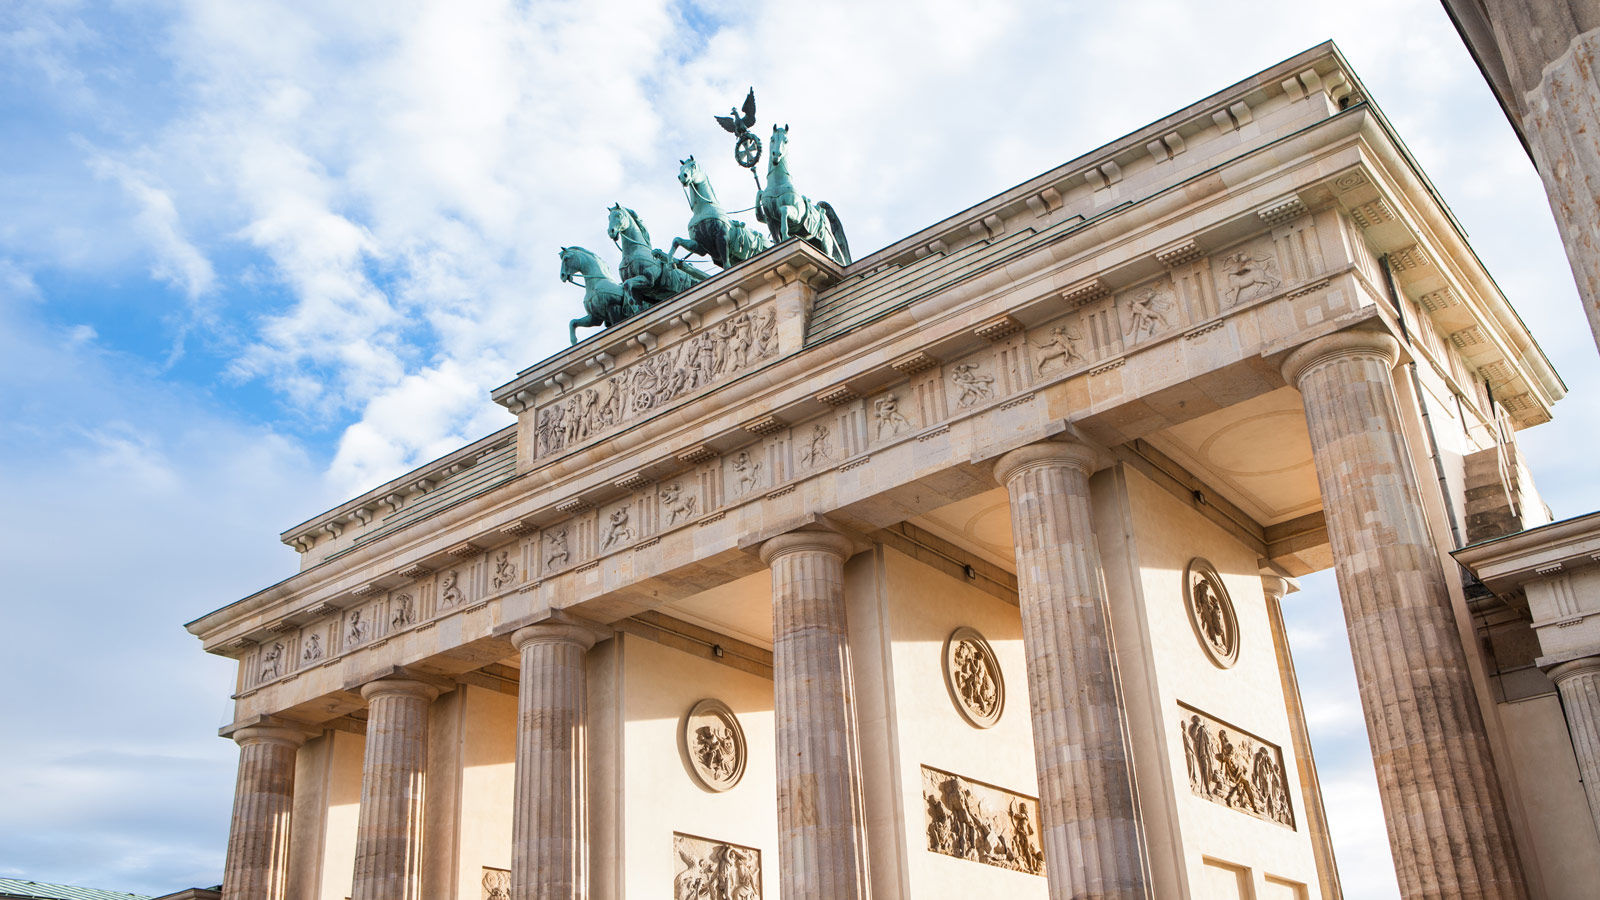 Brandenburg Gate just minutes away from The Westin Grand hotel Berlin